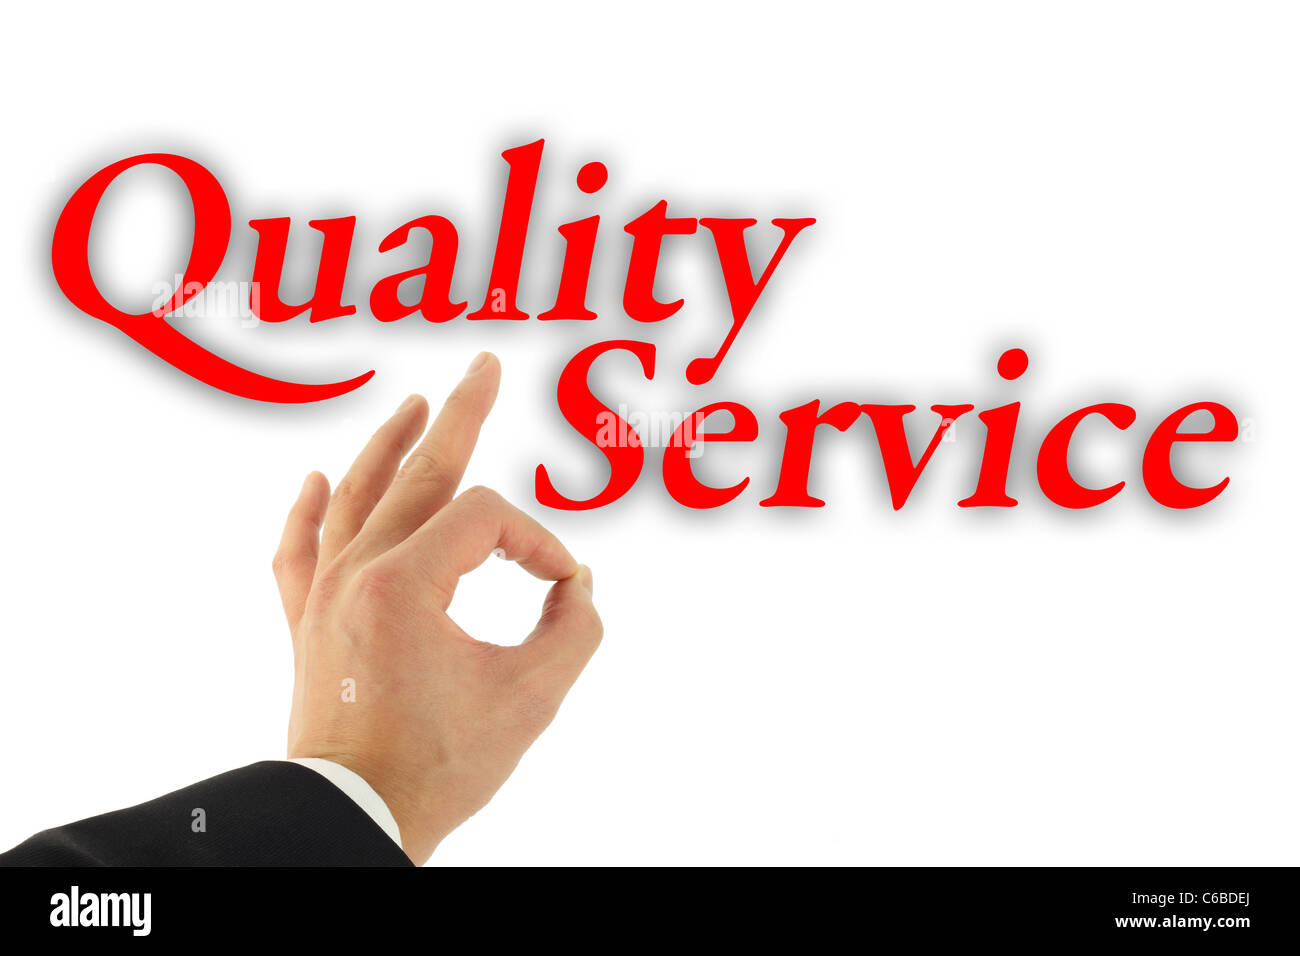 Quality service concept with hand okay sign isolated on white - Stock Image